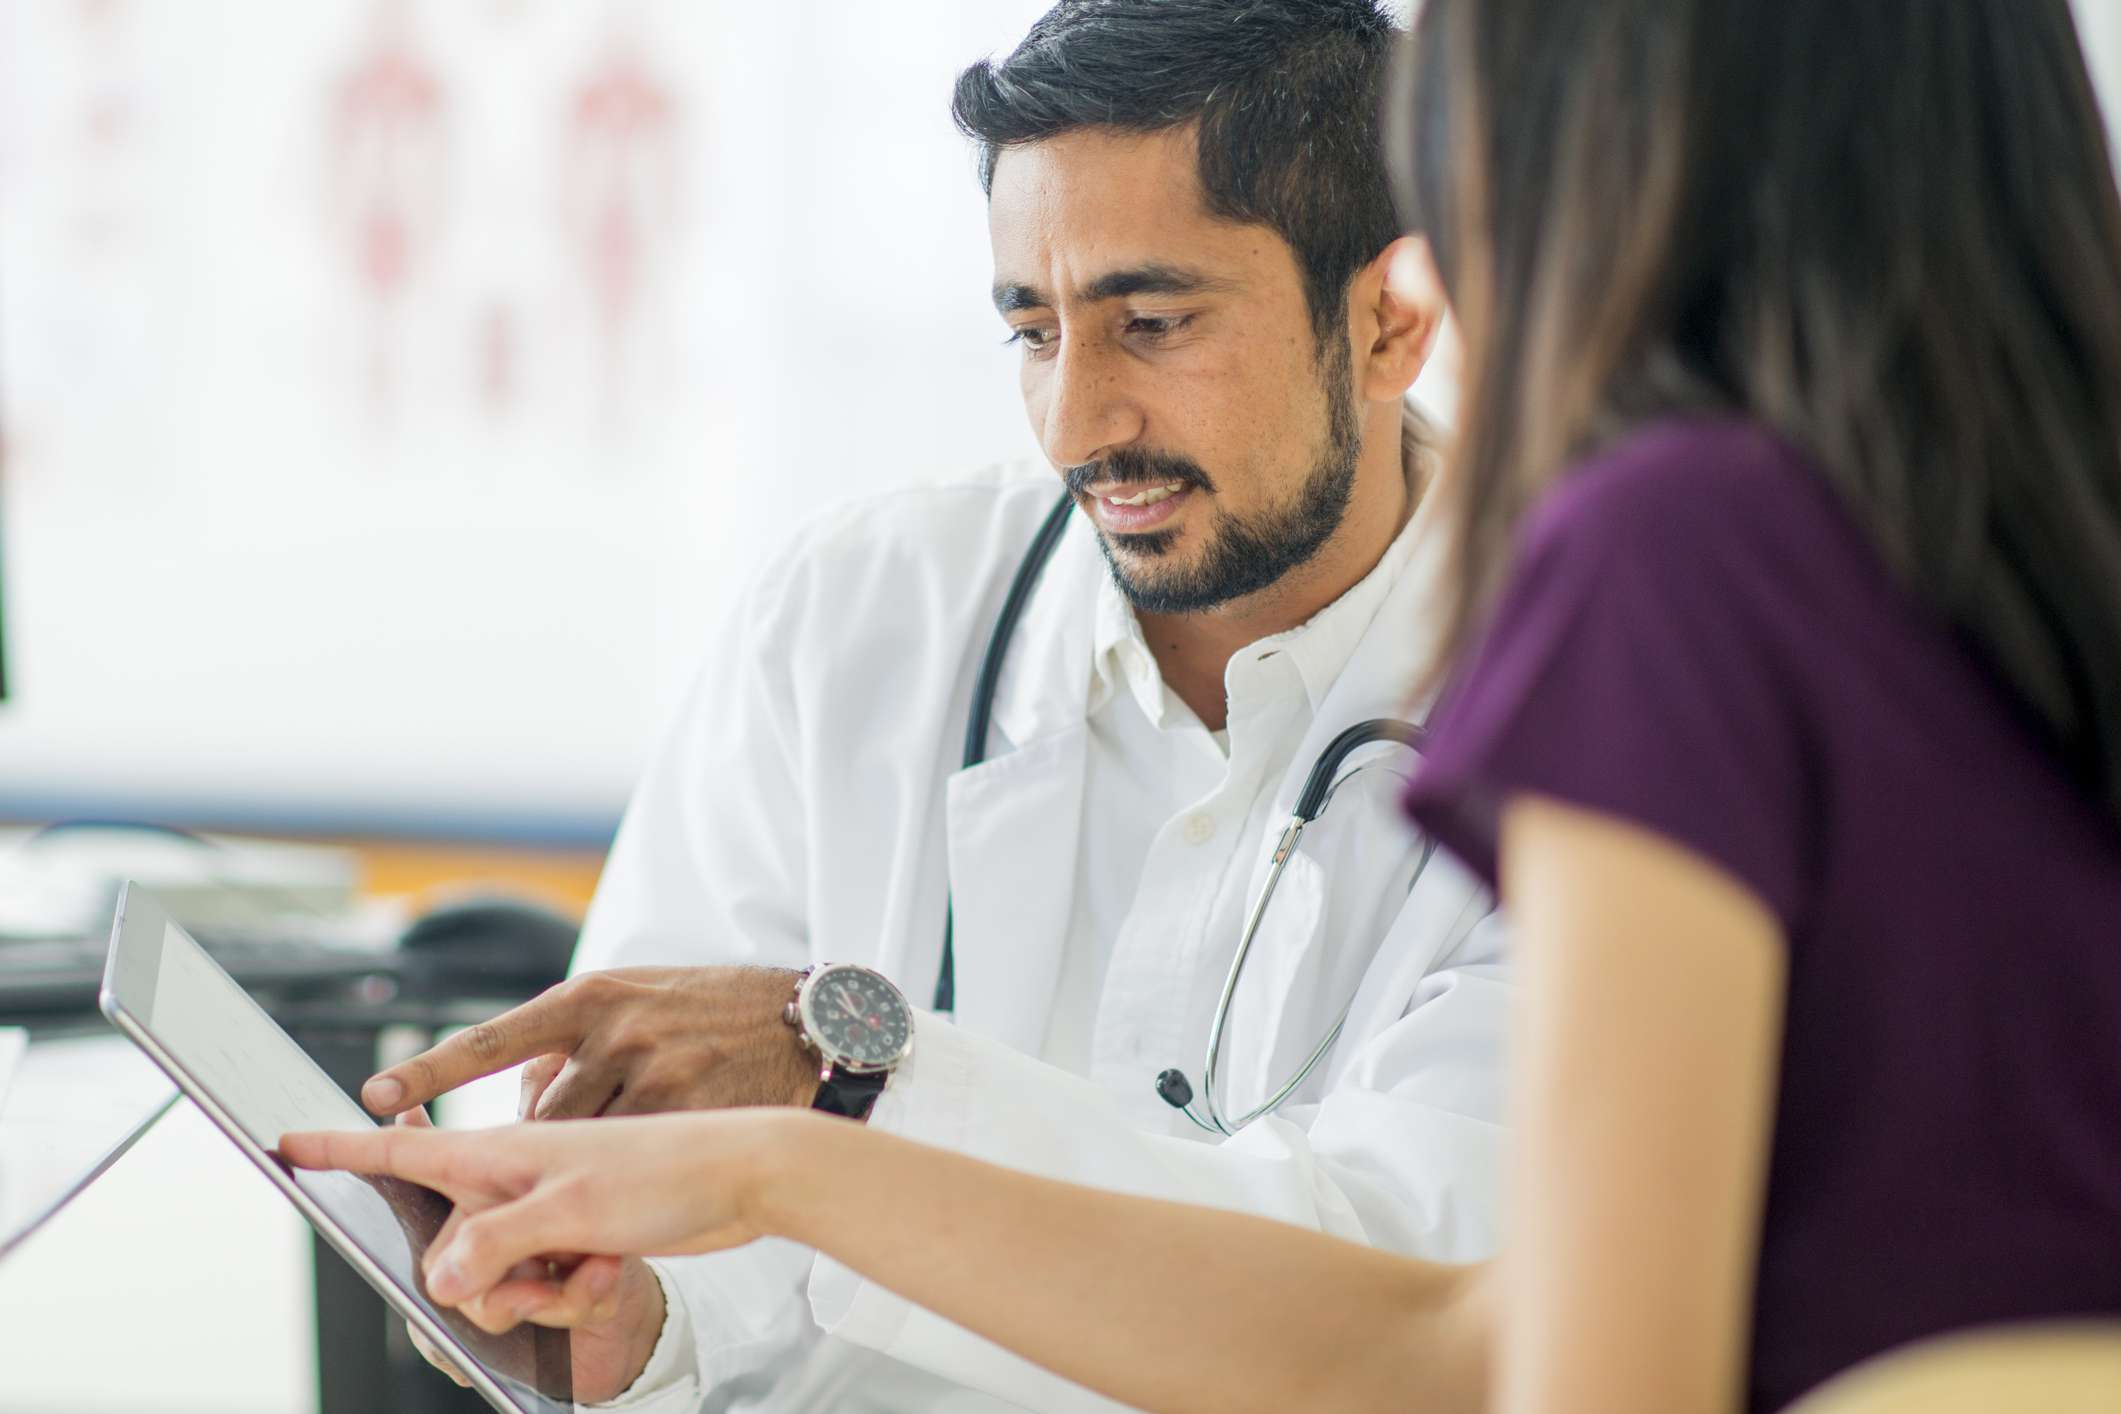 Doctor showing information on a tablet to a patient